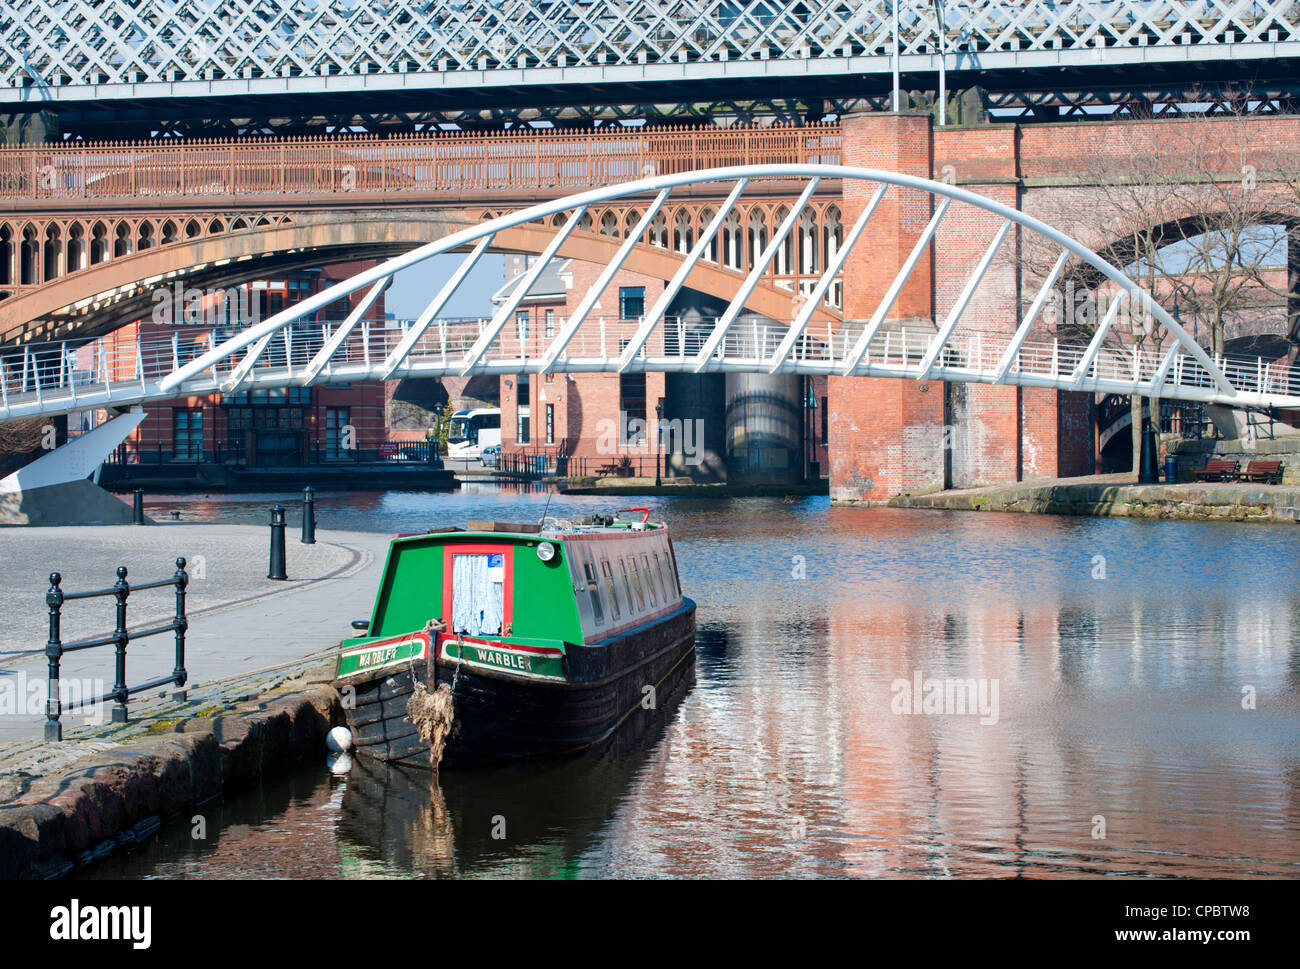 Merchants Bridge in Castlefield & The Bridgewater Canal, Manchester, England, UK - Stock Image